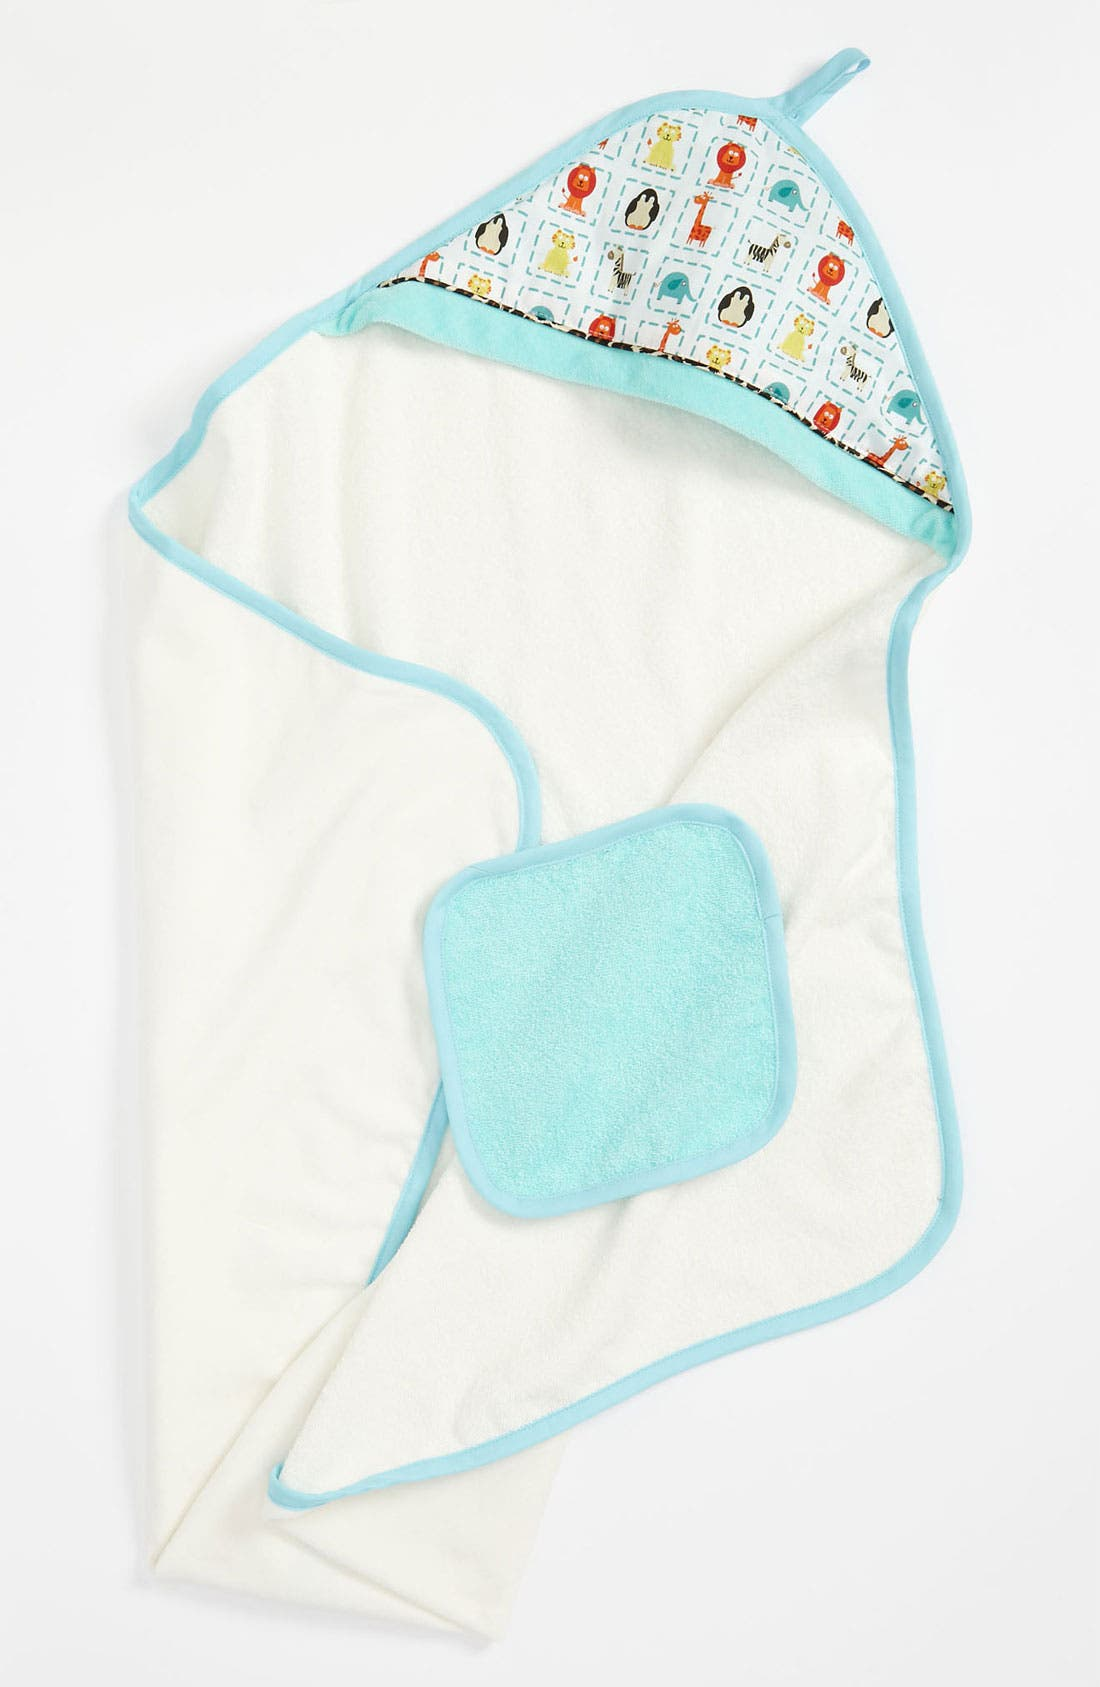 Alternate Image 1 Selected - Baby JaR Hooded Towel & Washcloth (Infant)